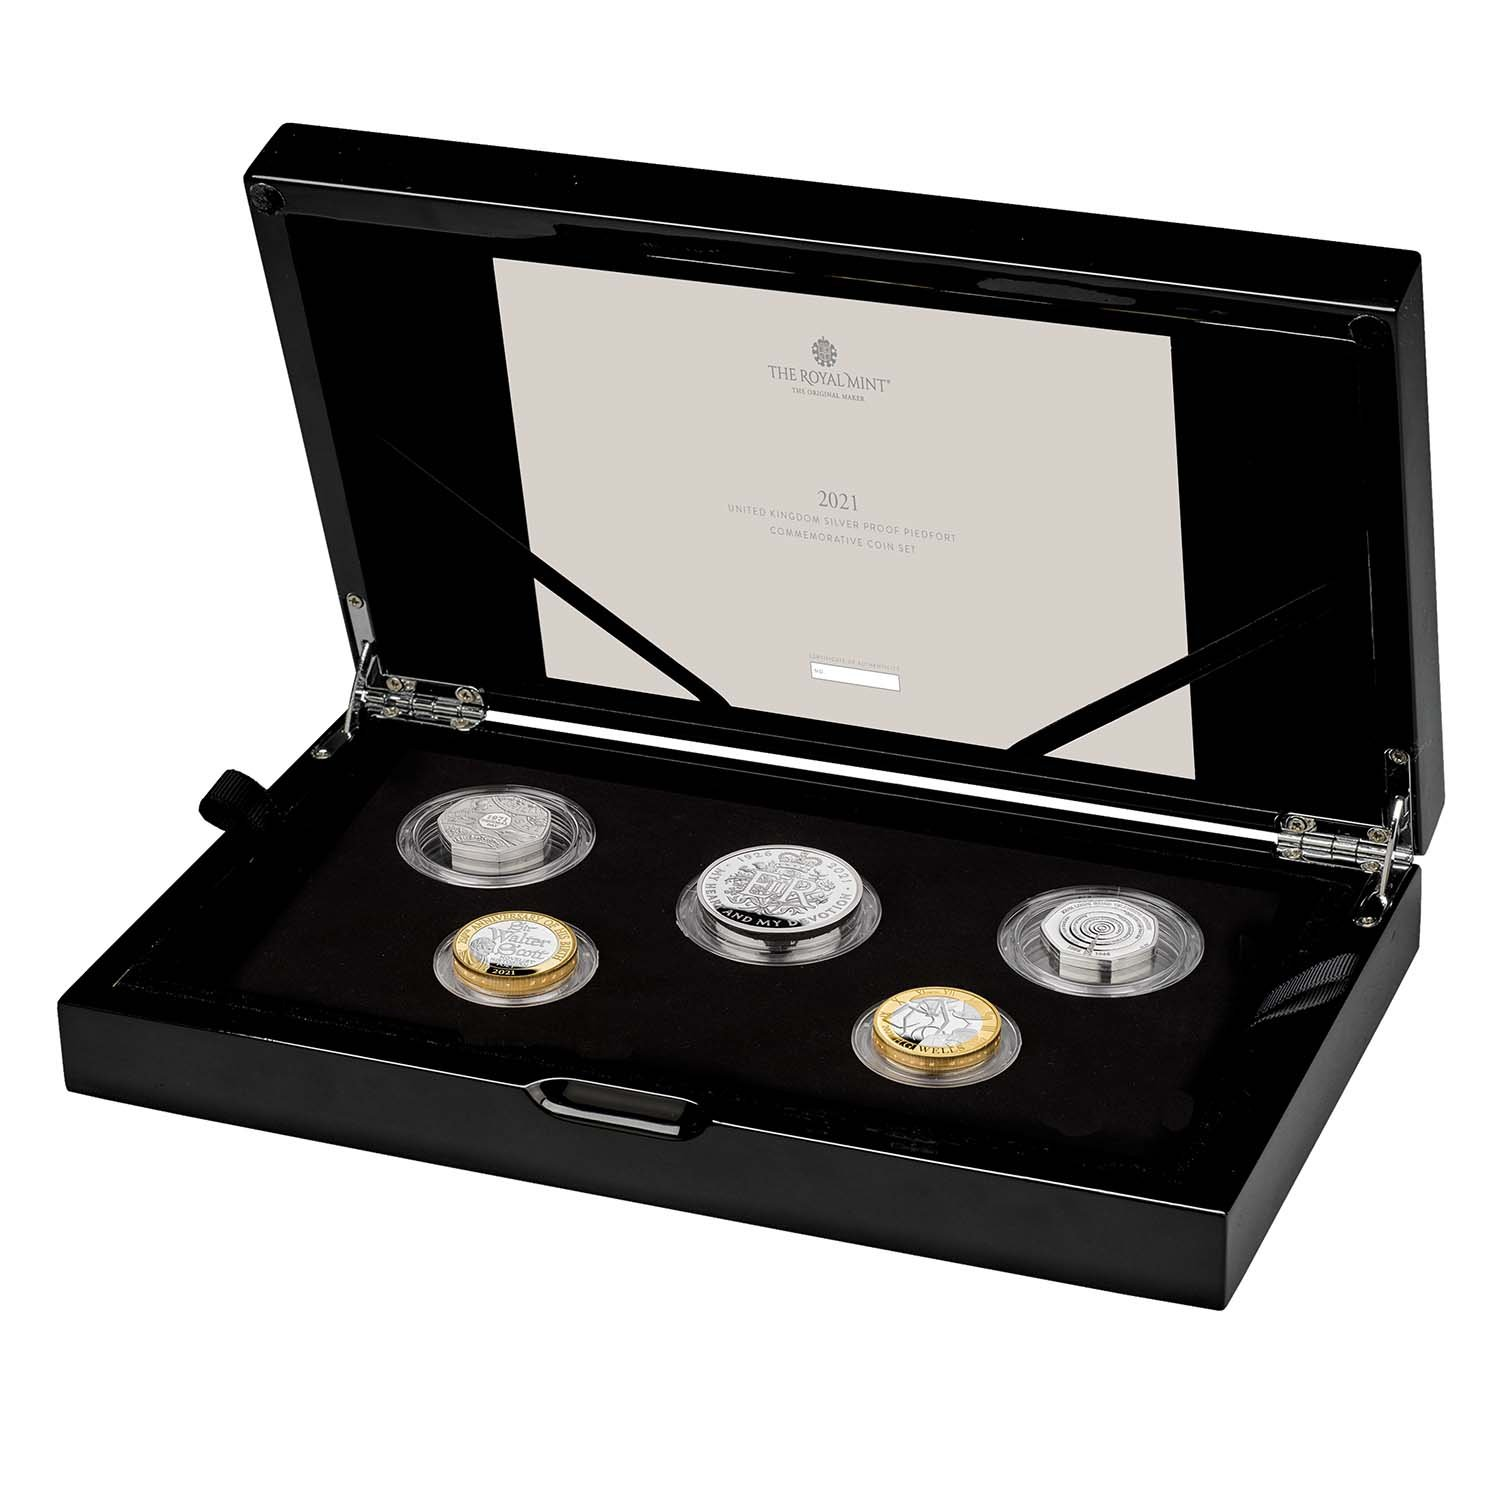 2021 United Kingdom Silver Proof Piedfort Coin Set